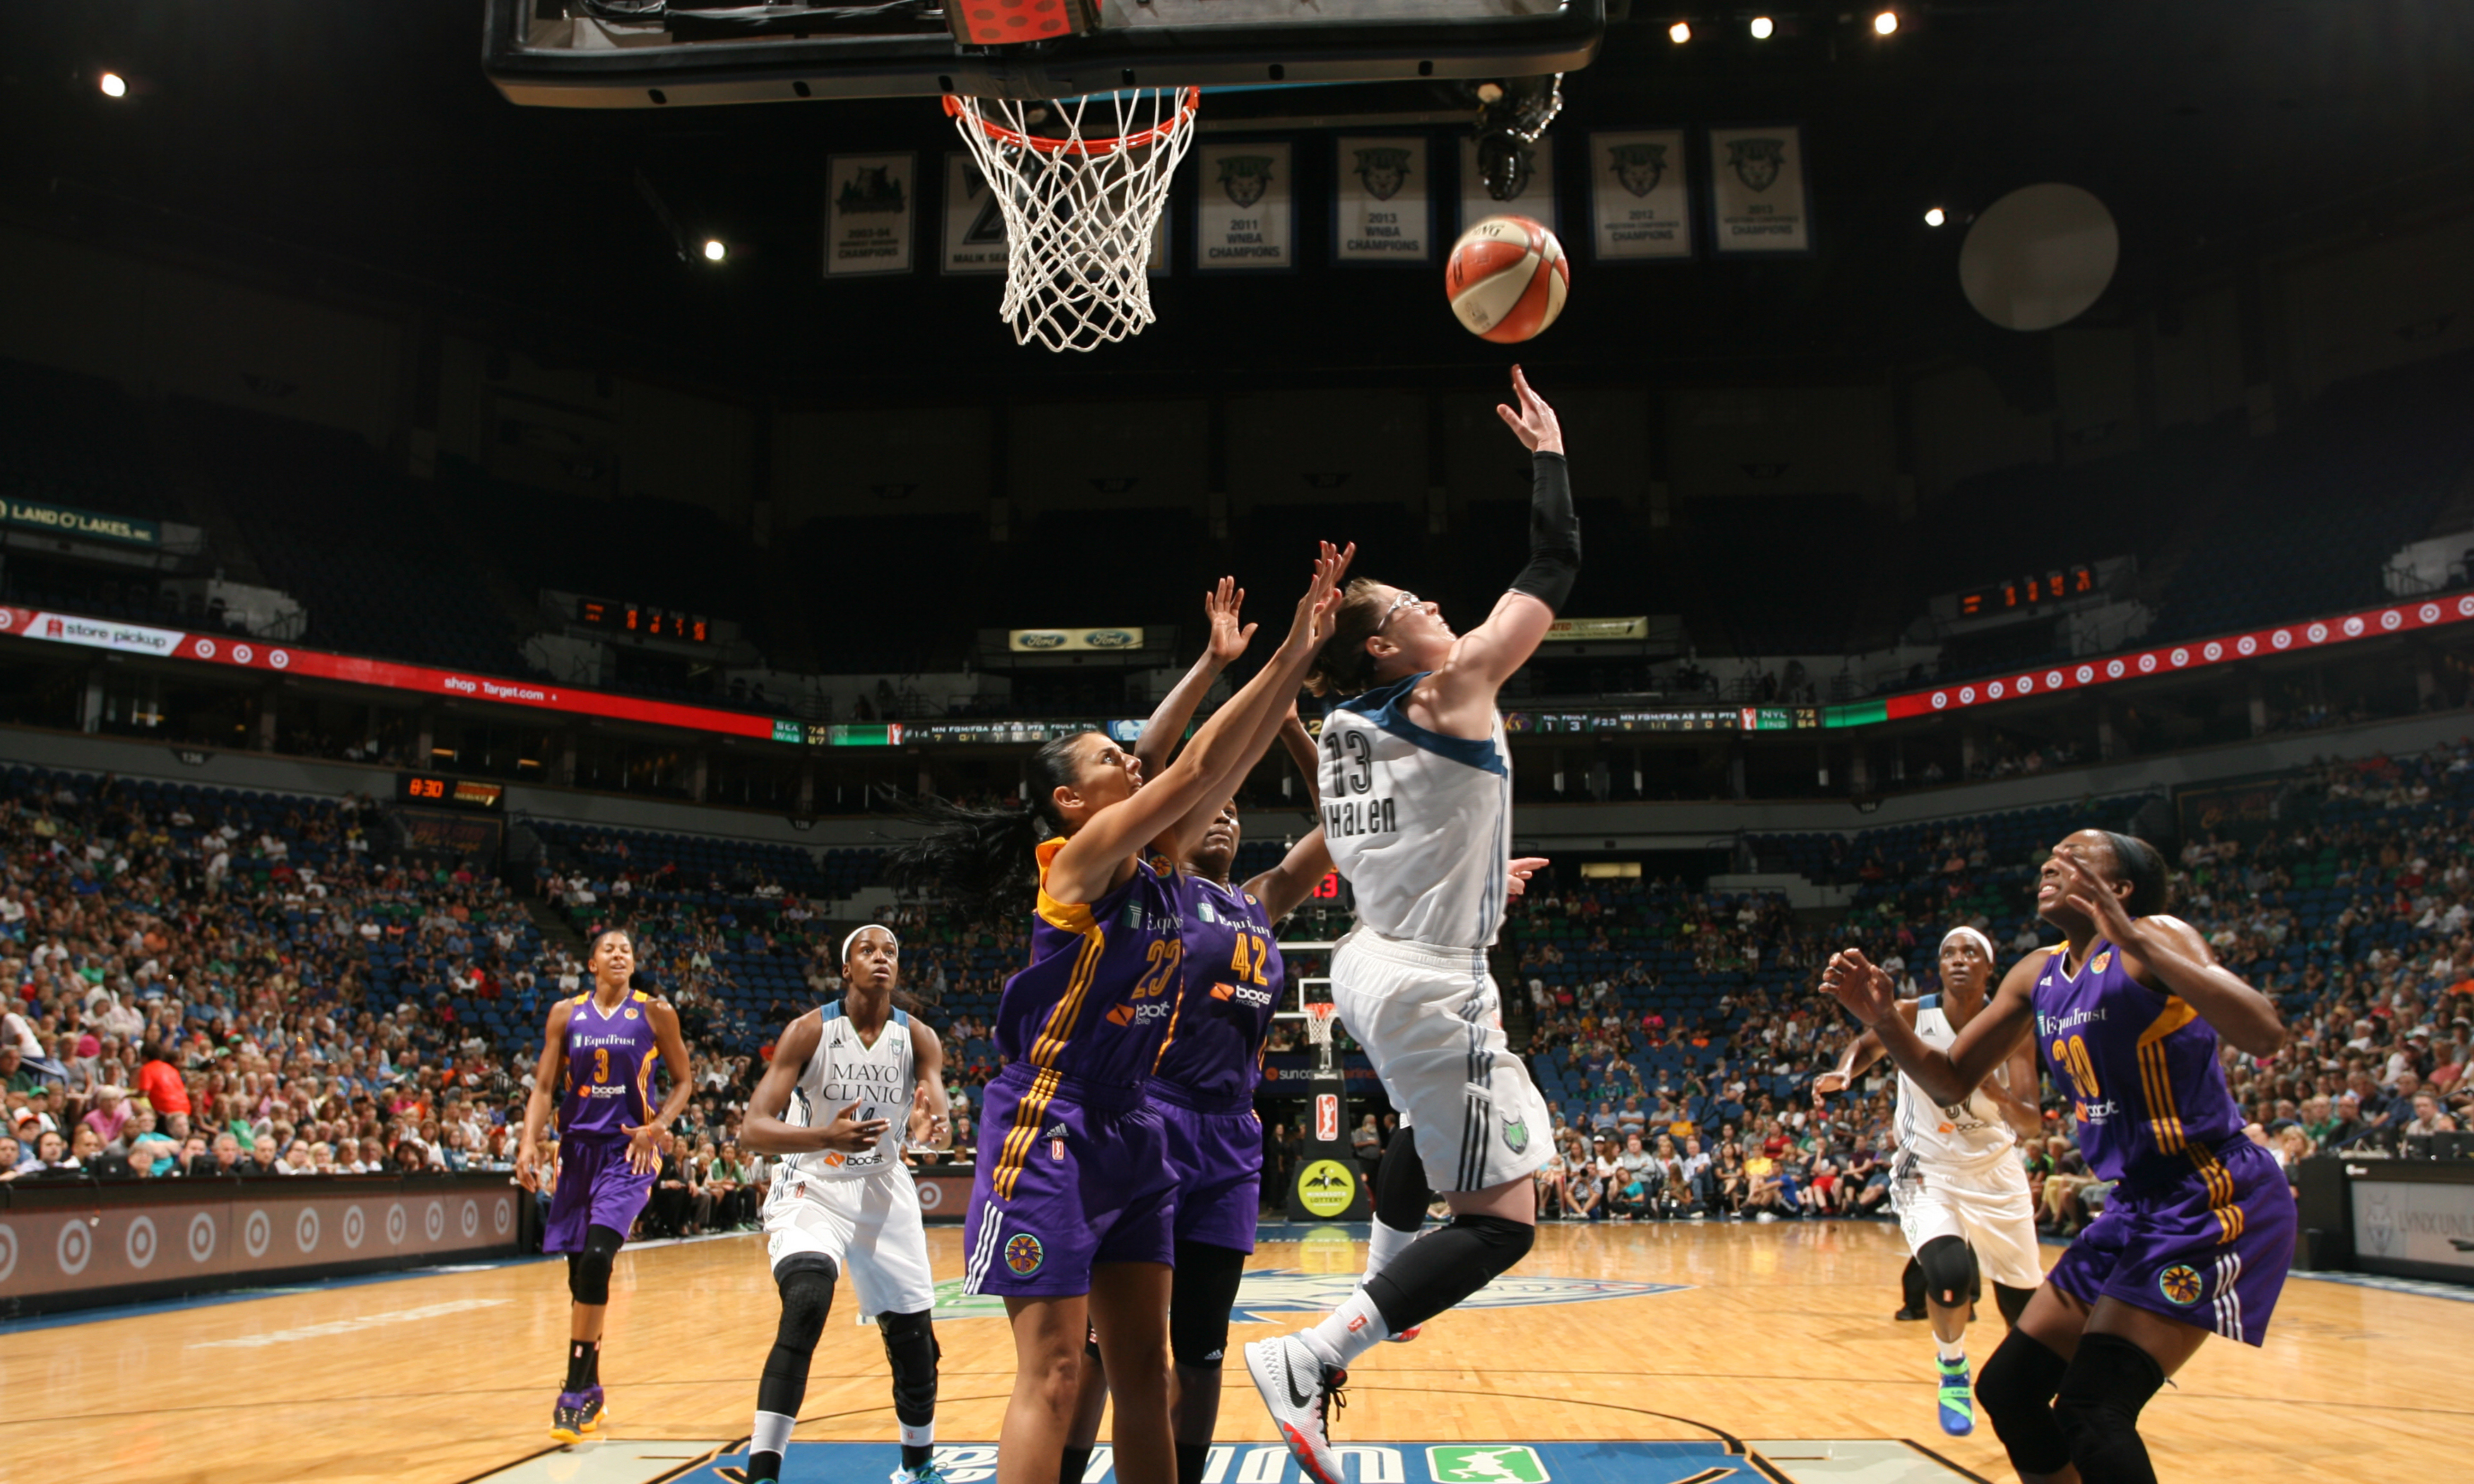 Lynx guard Lindsay Whalen was making crazy plays all night against the Sparks, finishing with 24 points and six assists in the Lynx win.